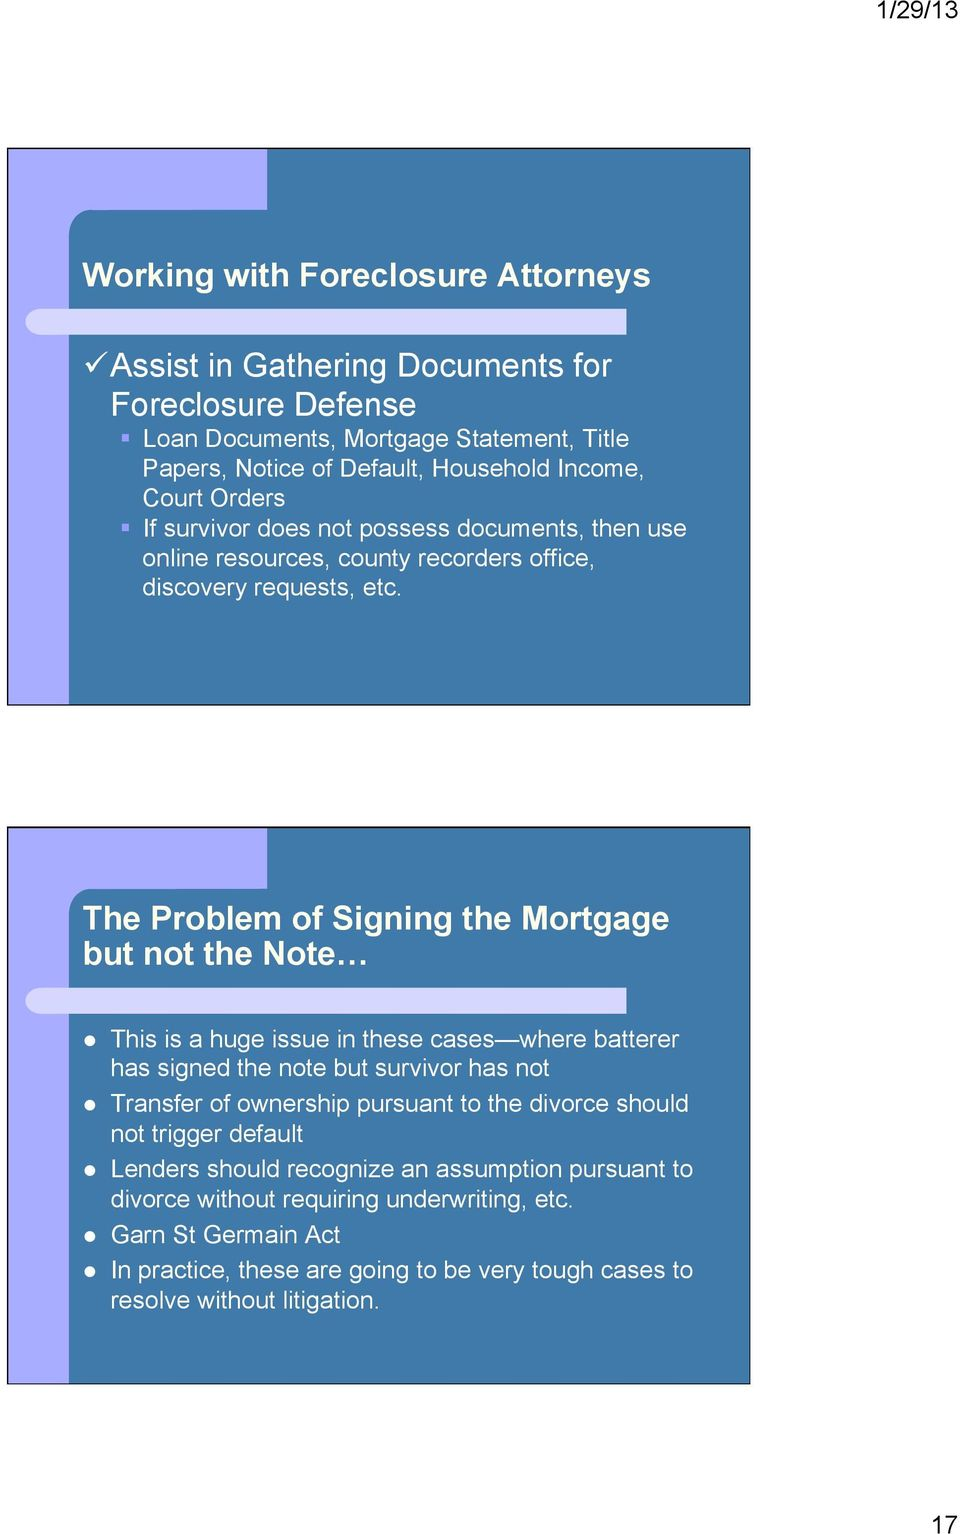 The Problem of Signing the Mortgage but not the Note This is a huge issue in these cases where batterer has signed the note but survivor has not Transfer of ownership pursuant to